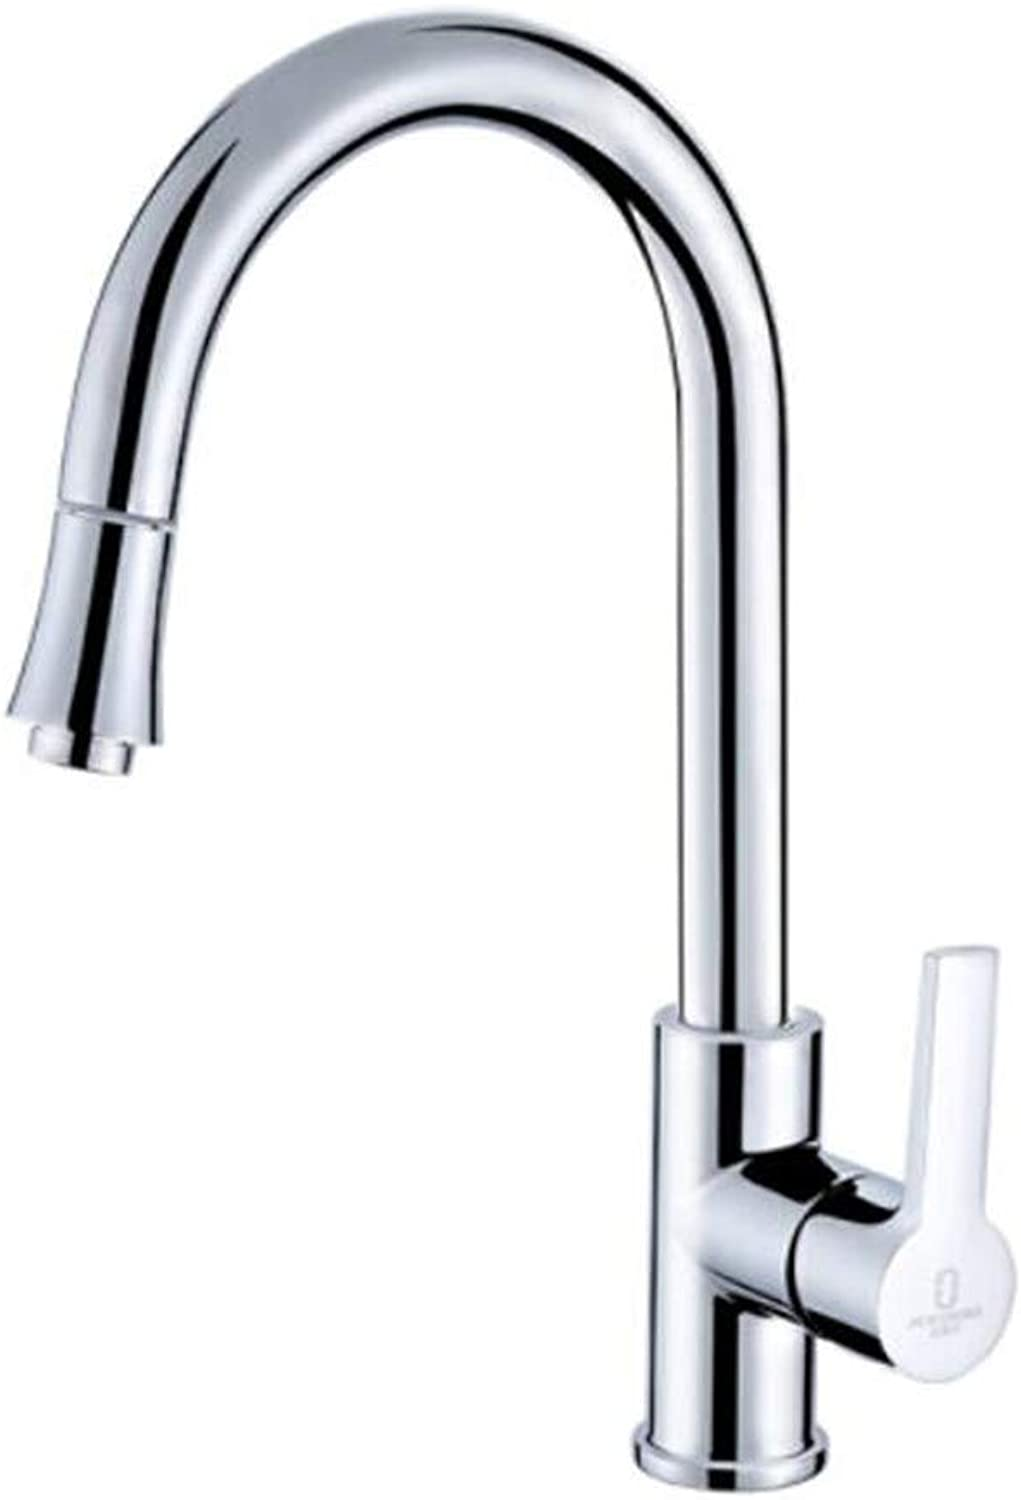 Faucet Waste Mono Spoutdraw Kitchen Sink Dishpan Cold and Hot Water Retractable redation